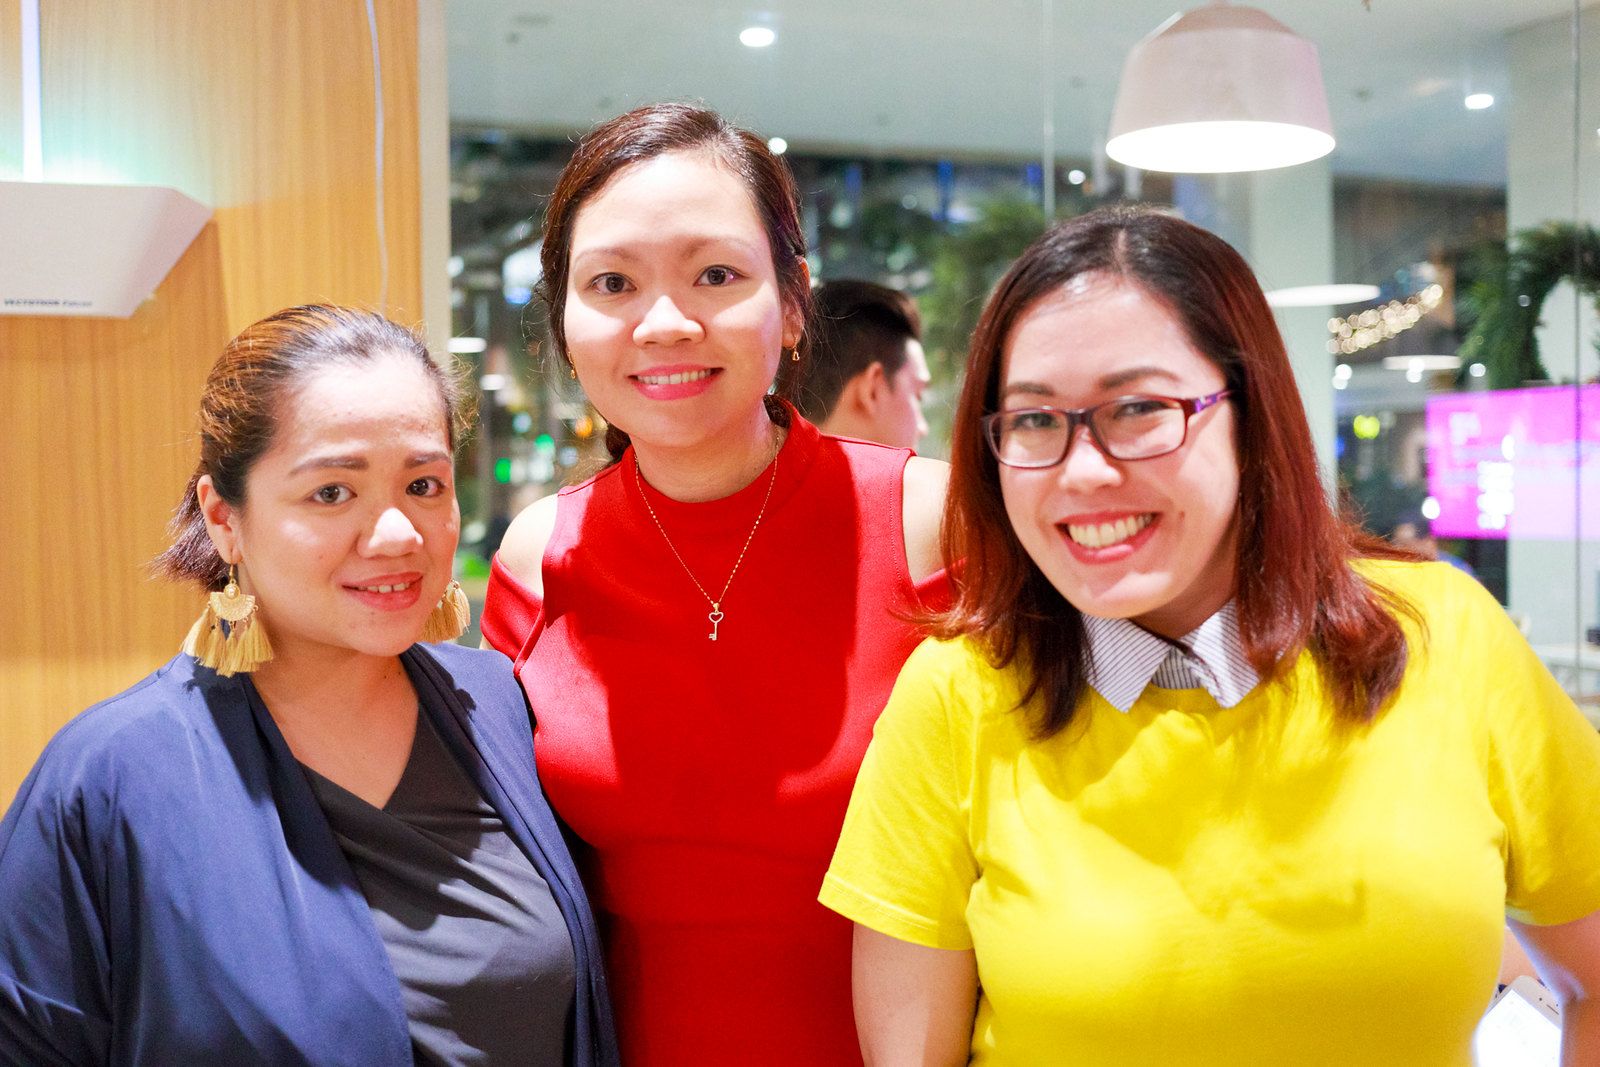 With blogger Shen Gee of Shen's Addiction and Rowena of Animetric's World